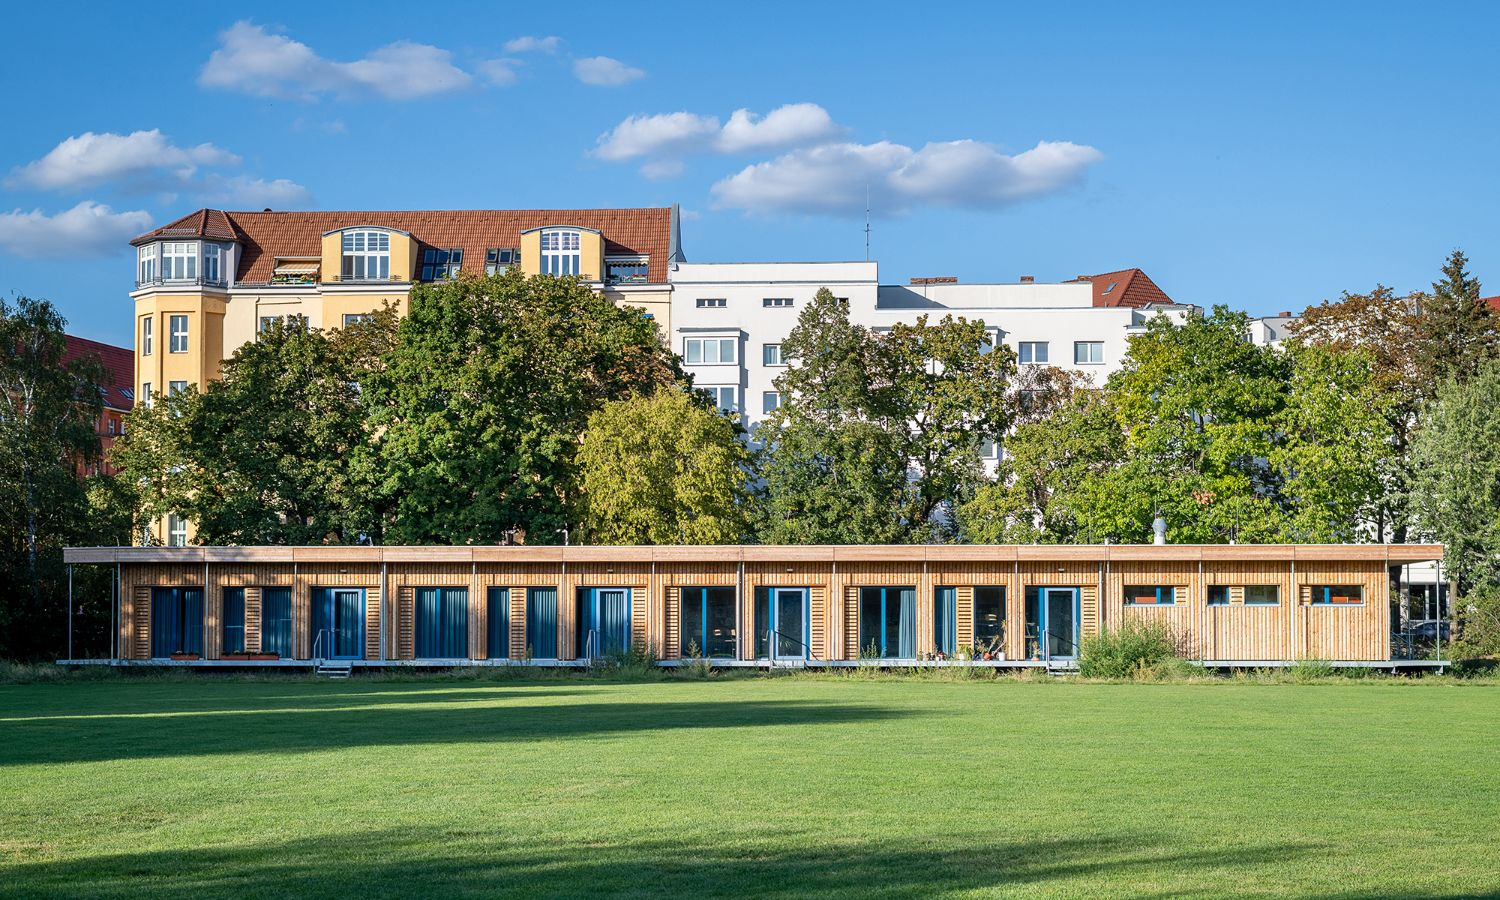 Visualisation of a single-storey, temporary school building in Berlin Schönefeld. The wooden facade stands out against the green meadow and blue sky.